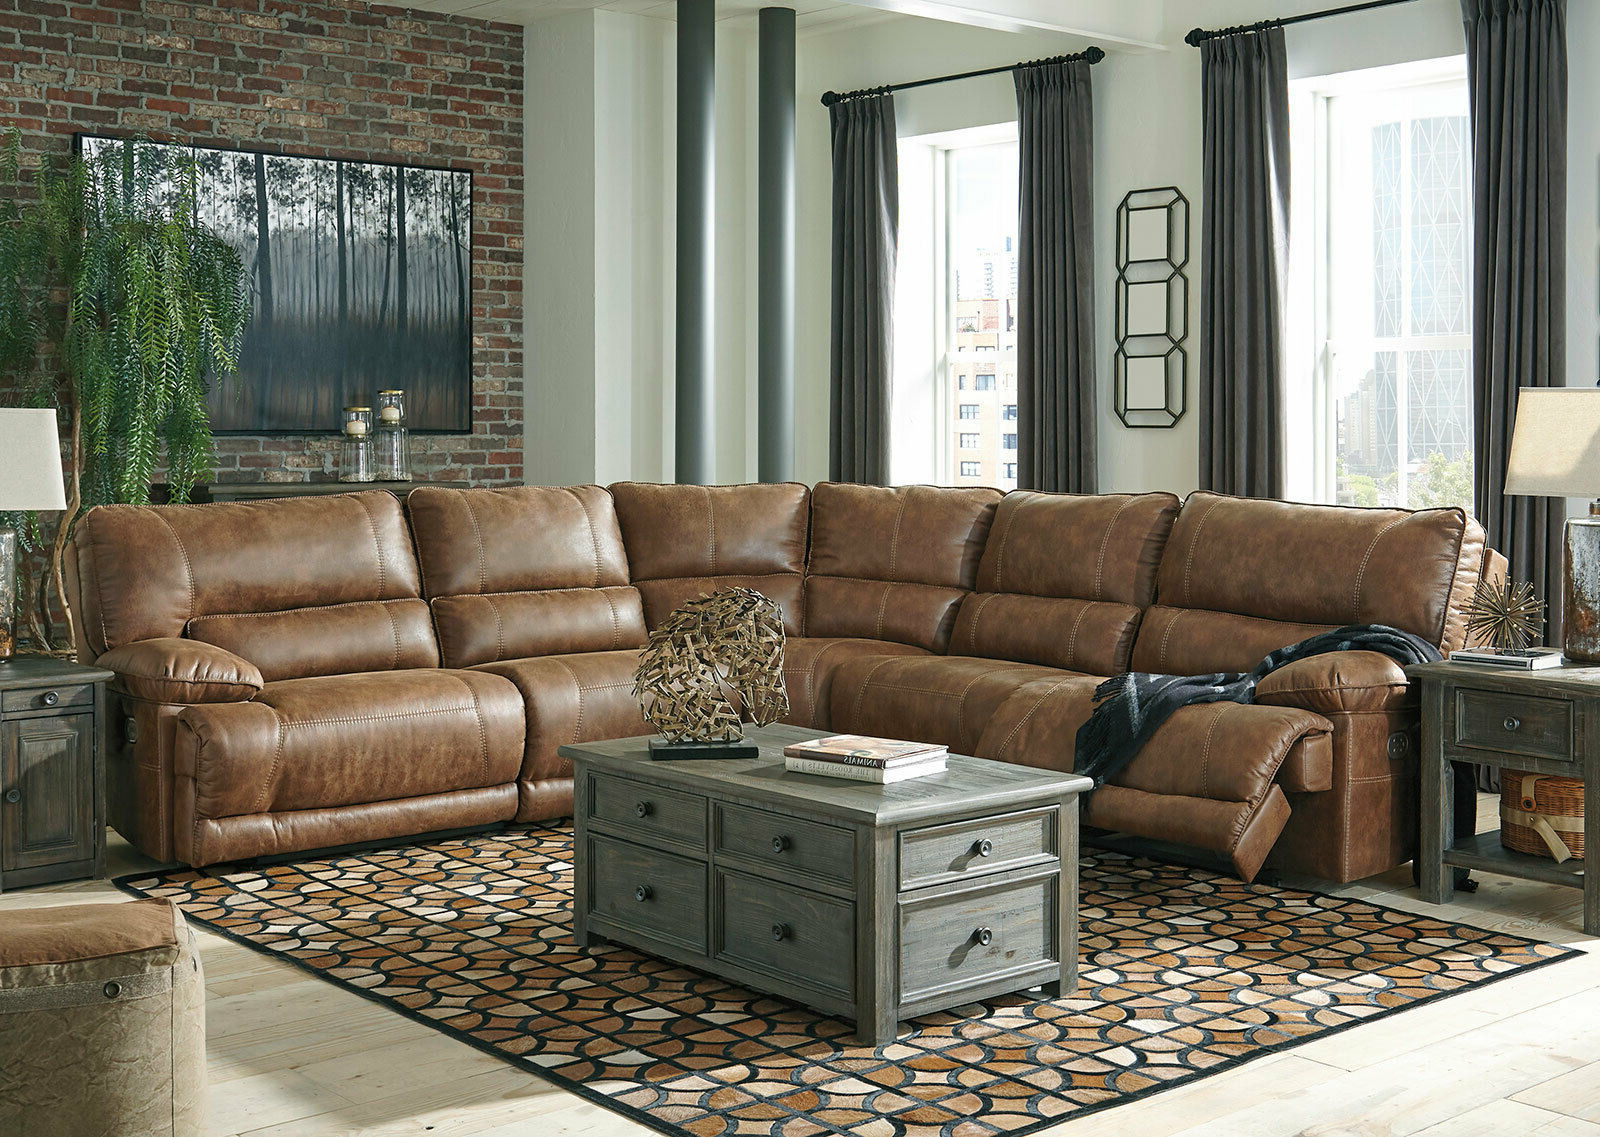 Living Room 5 Piece Sectional Brown Faux Leather Power In Well Known 3pc Faux Leather Sectional Sofas Brown (View 20 of 20)